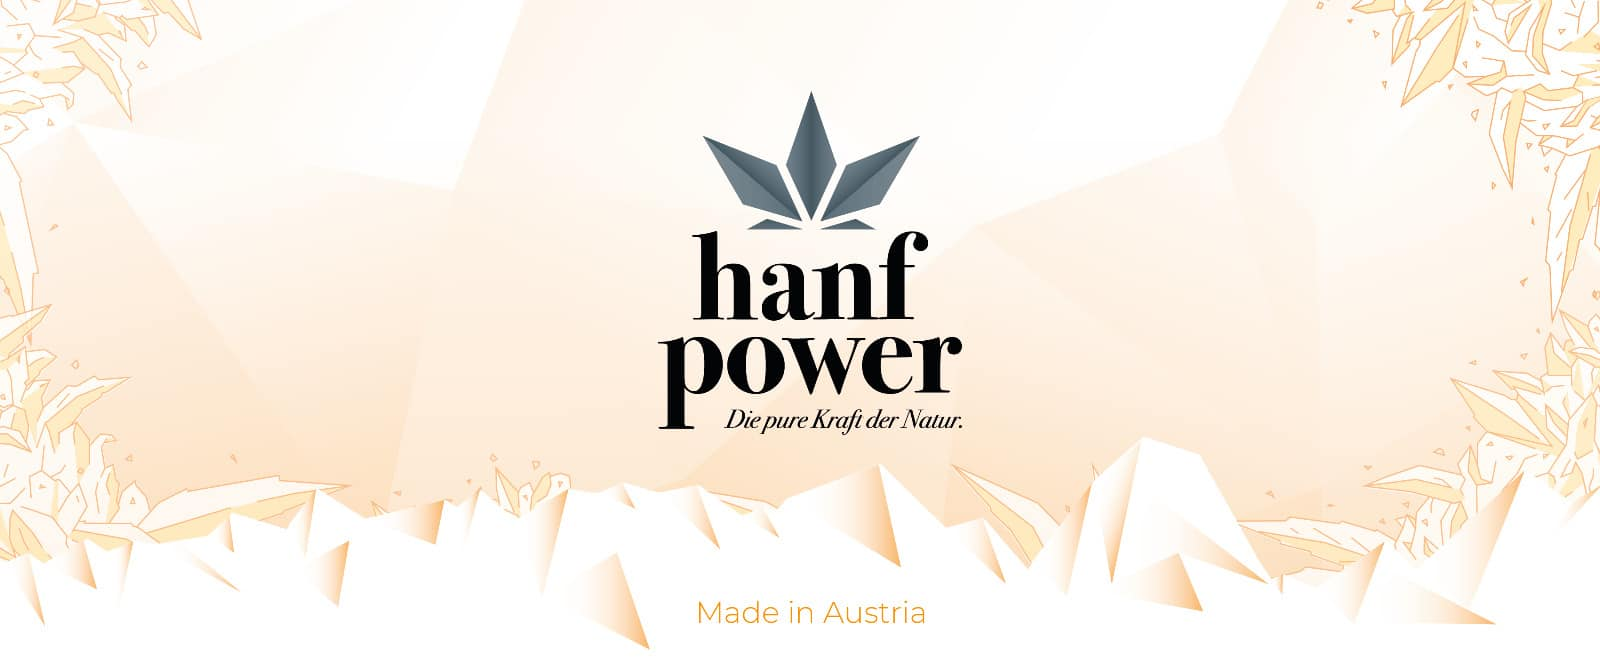 Hanf Power - Made in Austria